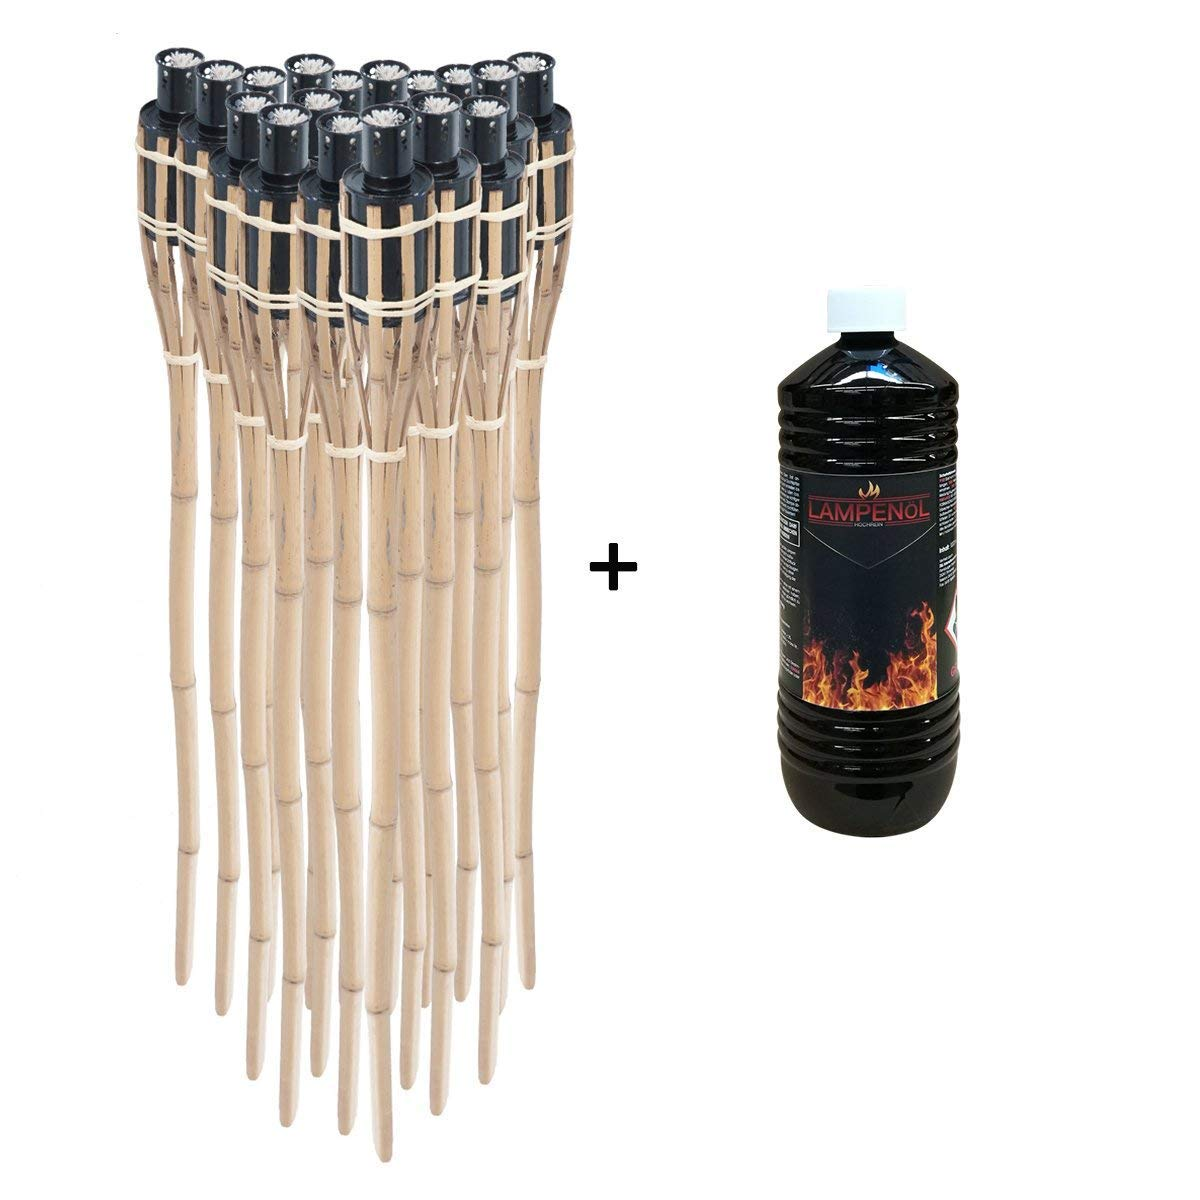 DXP 12 x Natural Handmade Bamboo Garden Tiki Torches with 1L Lamp and Torch Oil - Oil Burning - 3Ft / 90CM - Resuable Oil Lantern for Garden Yard Party Decorations